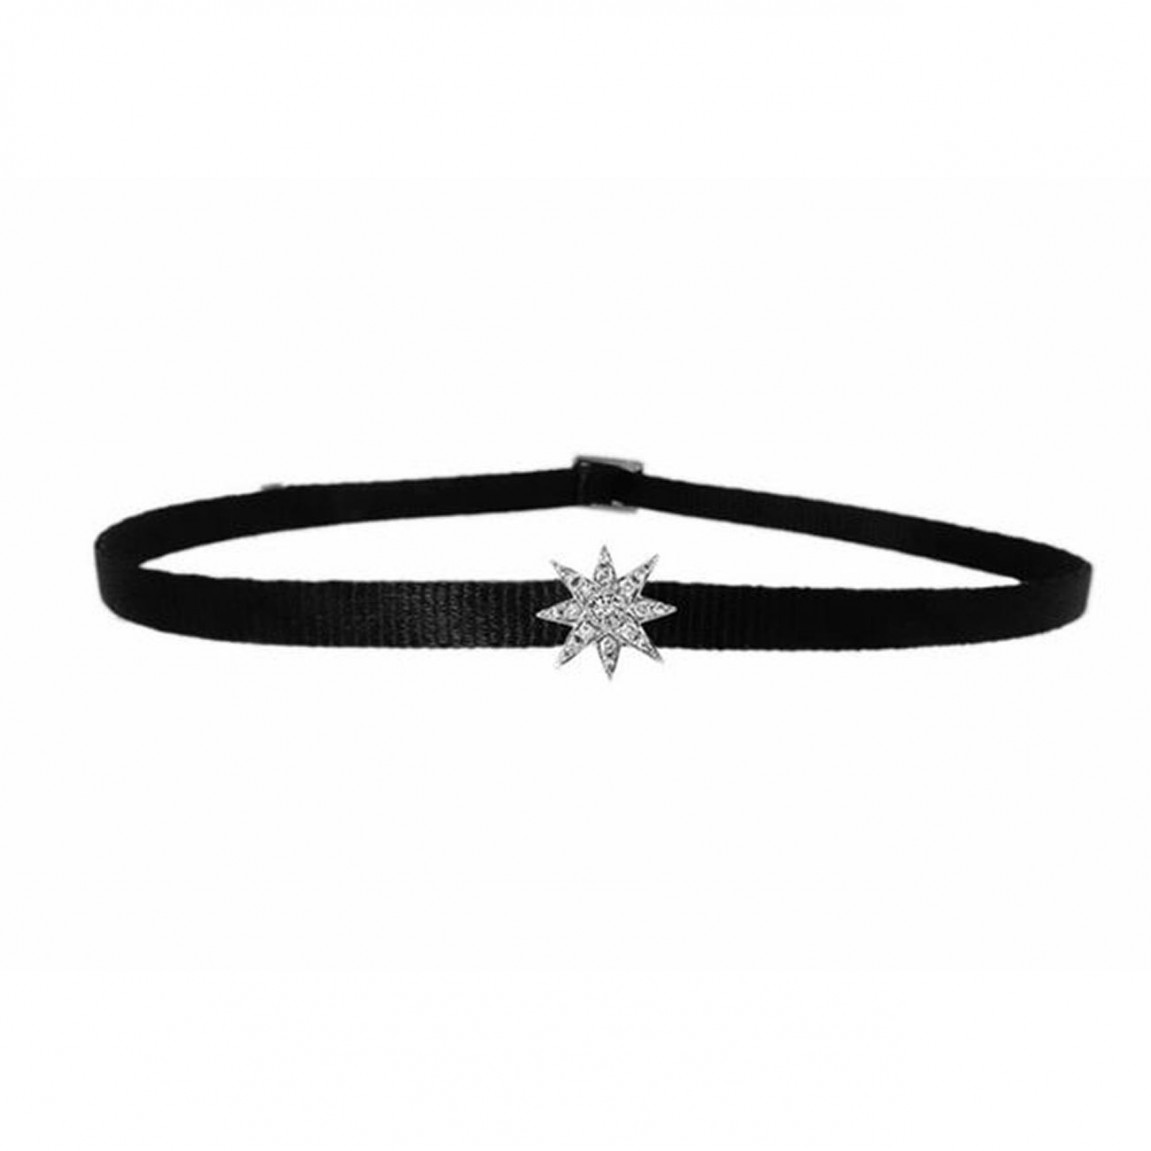 Starburst white gold choker